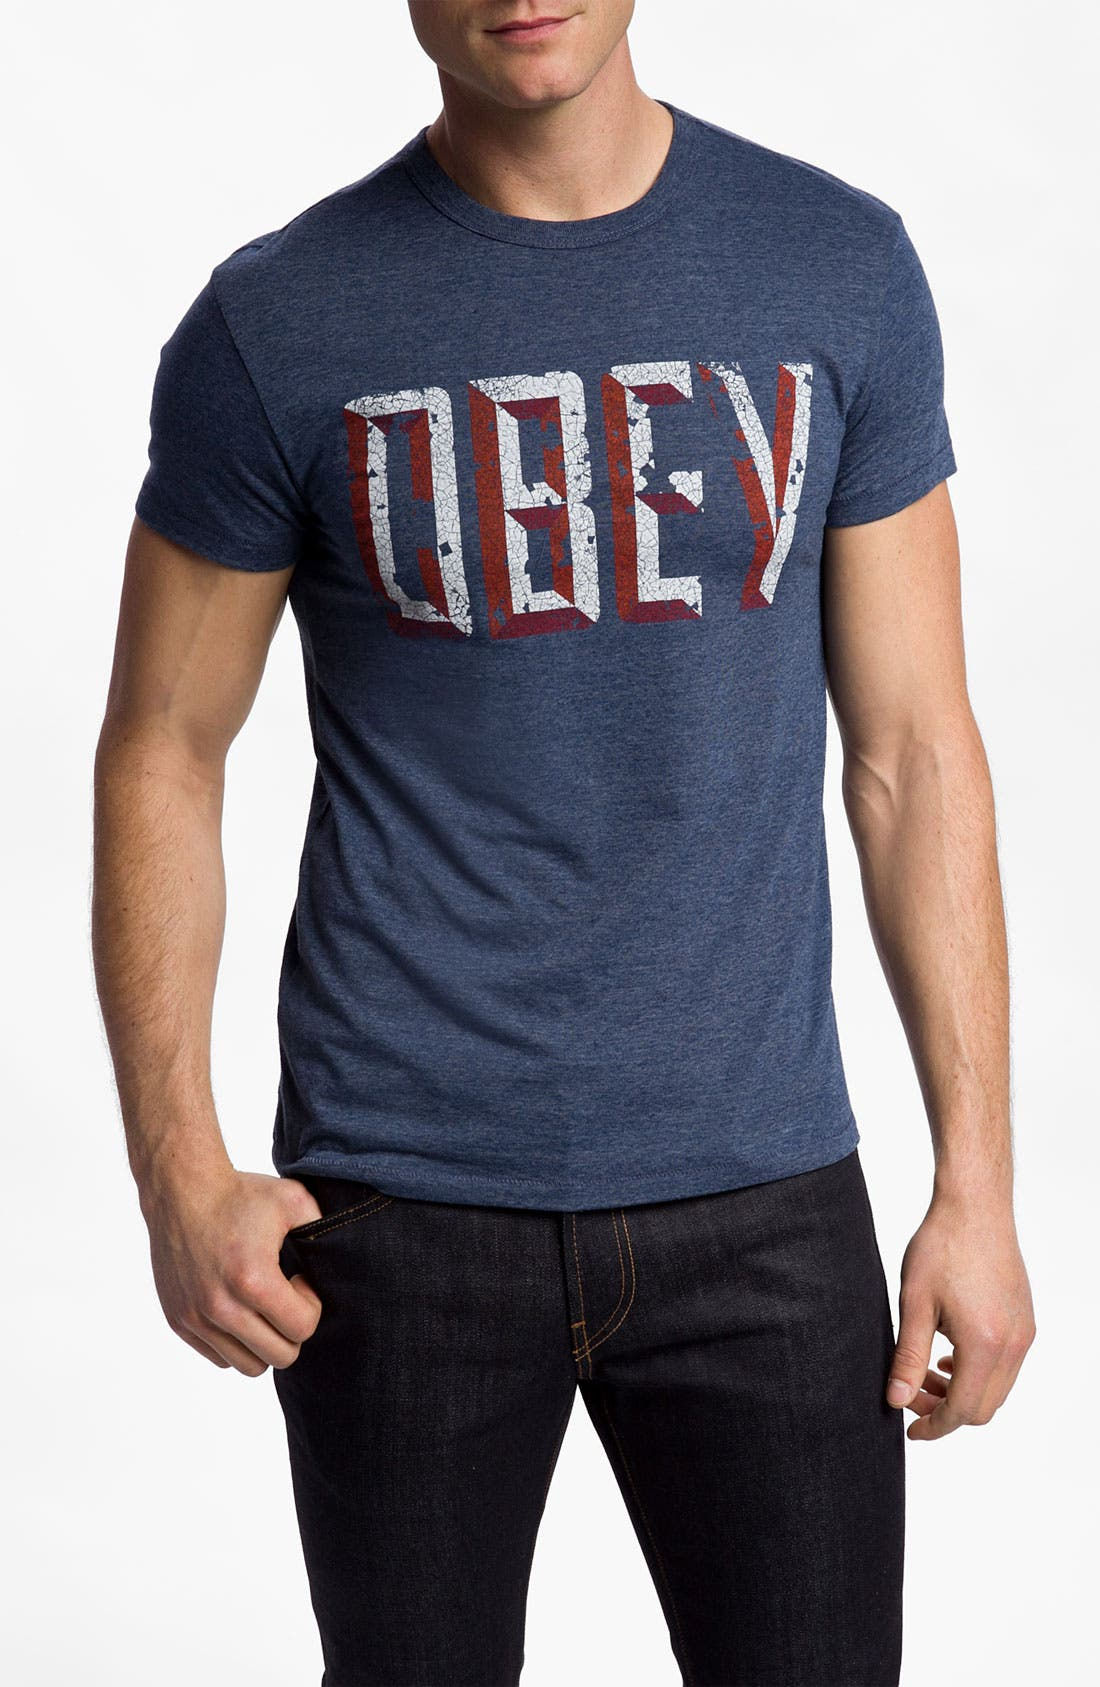 Main Image - Obey 'Urban Decay' T-Shirt